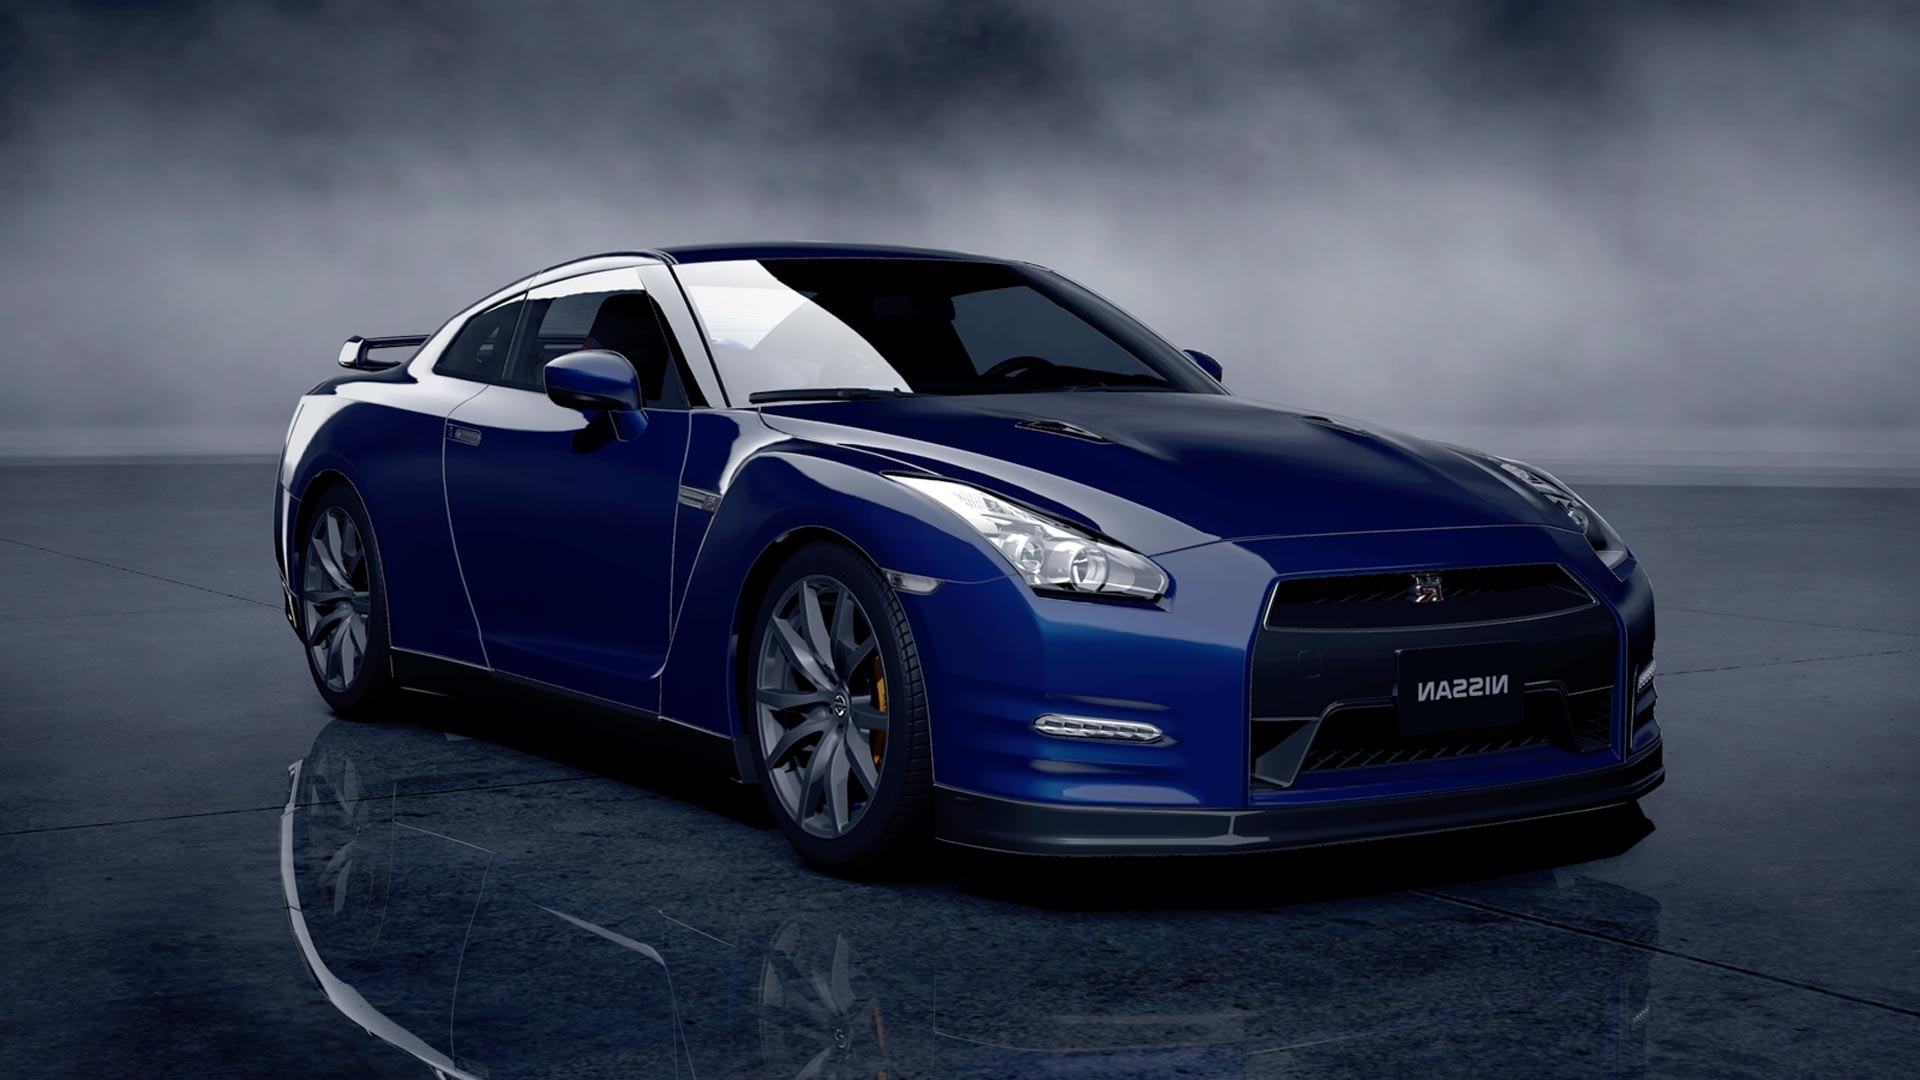 Nissan gtr r35 hd wallpapers 76 pictures - Nissan gtr hd wallpaper ...